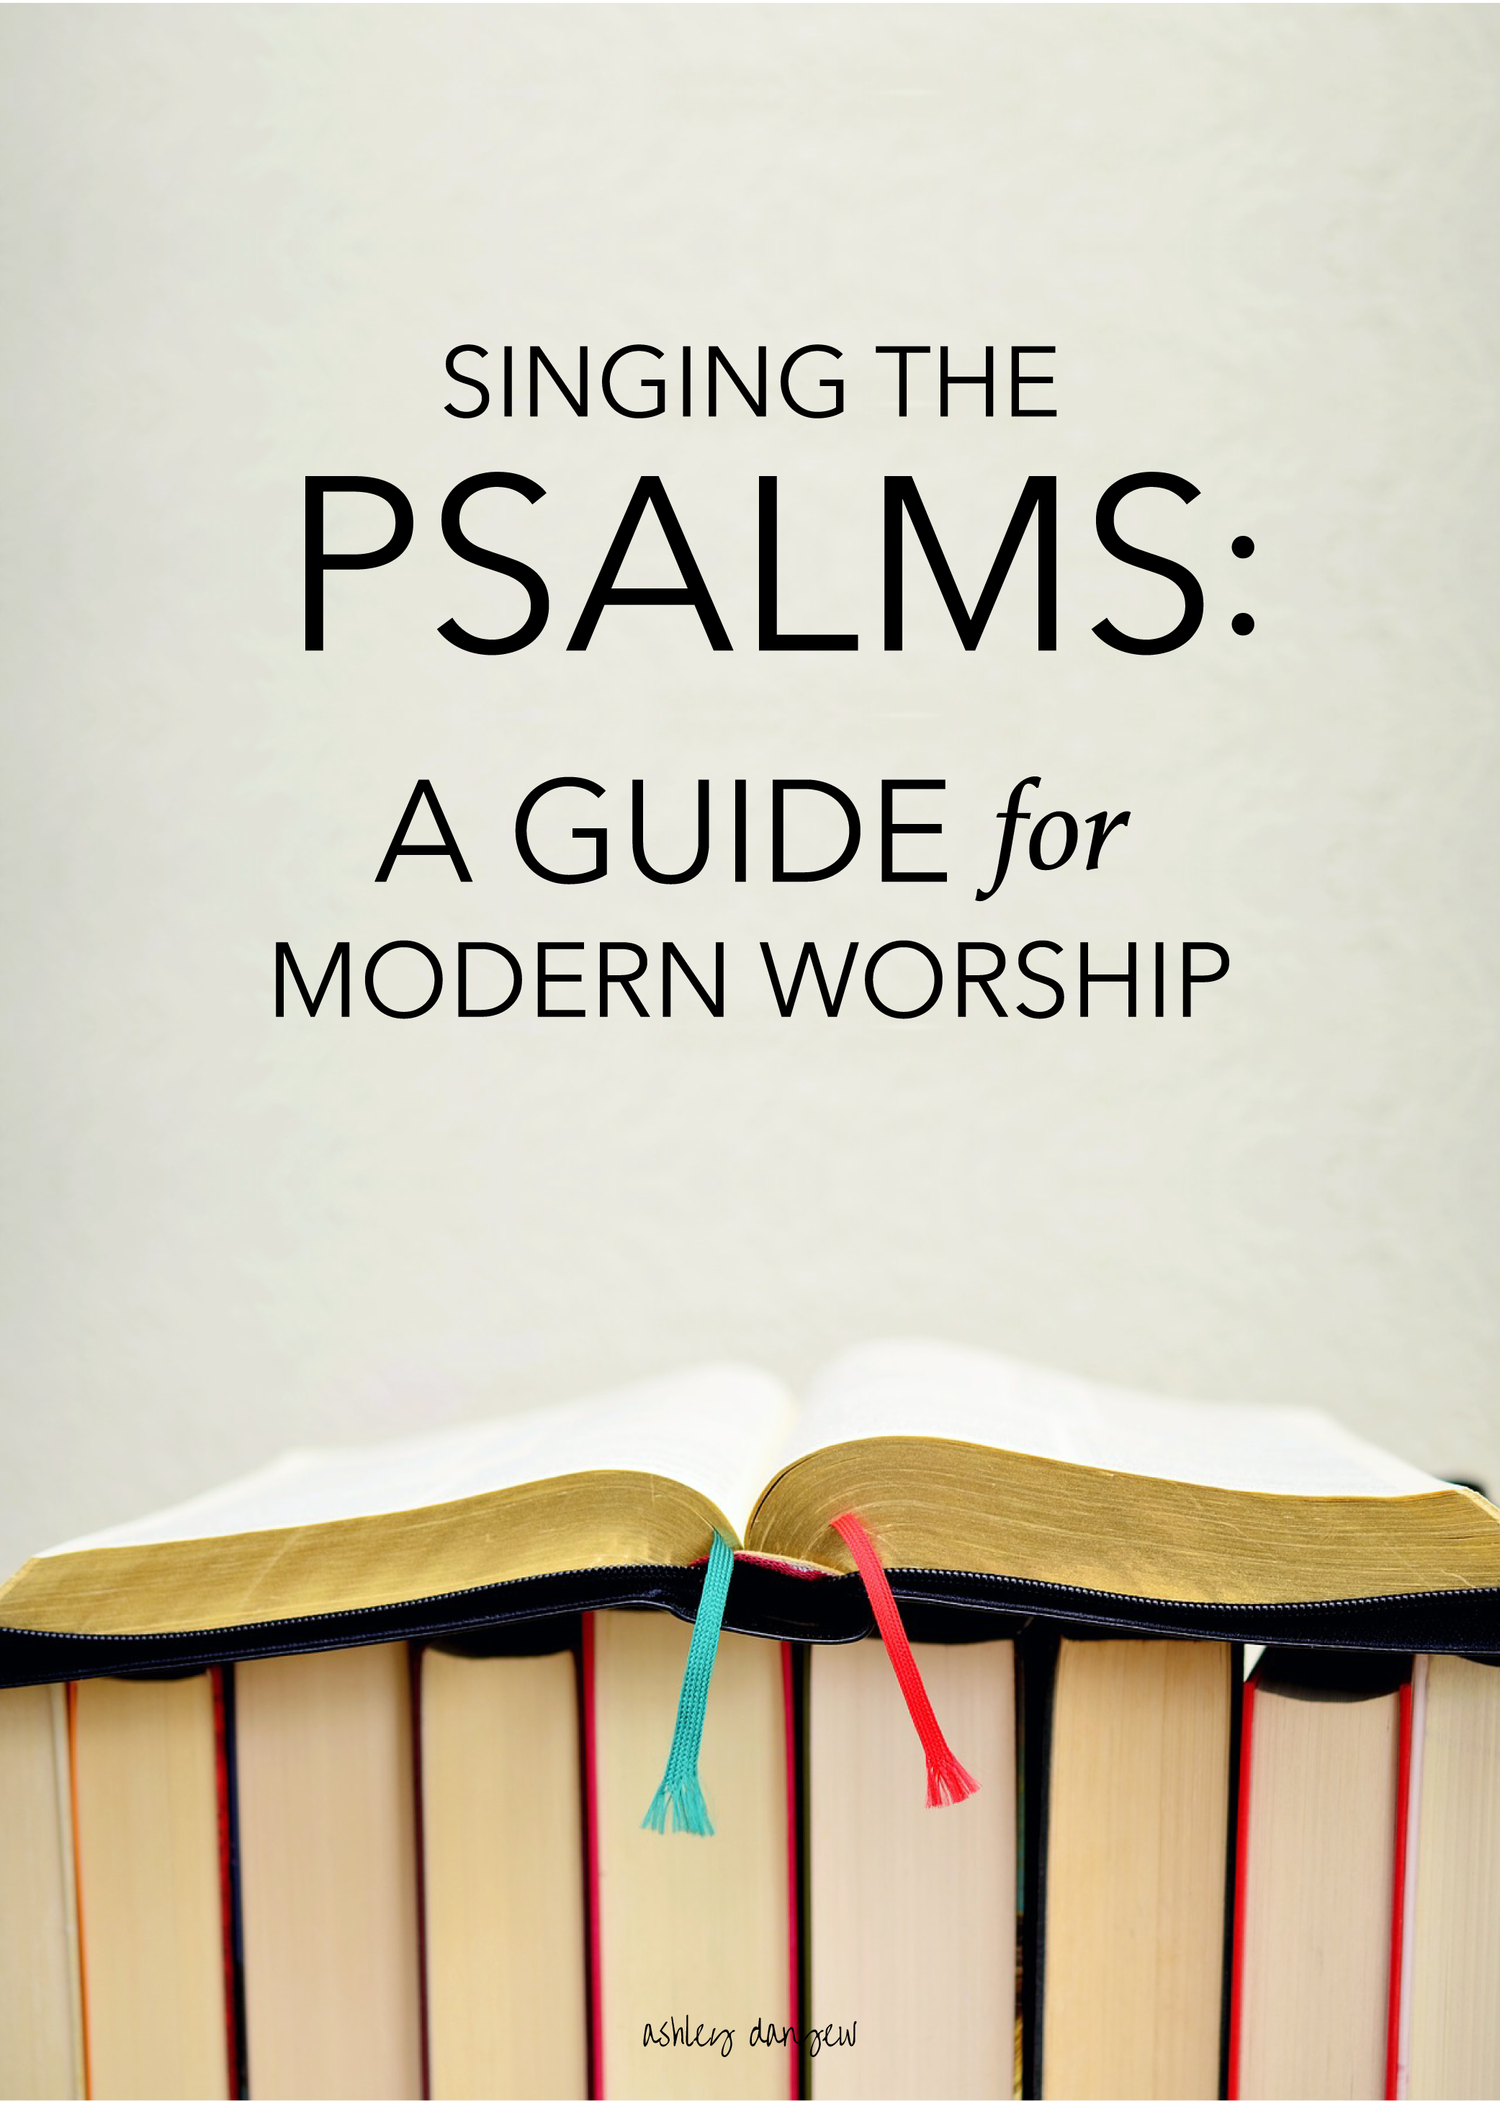 Singing the Psalms: A Guide for Modern Worship | Ashley Danyew